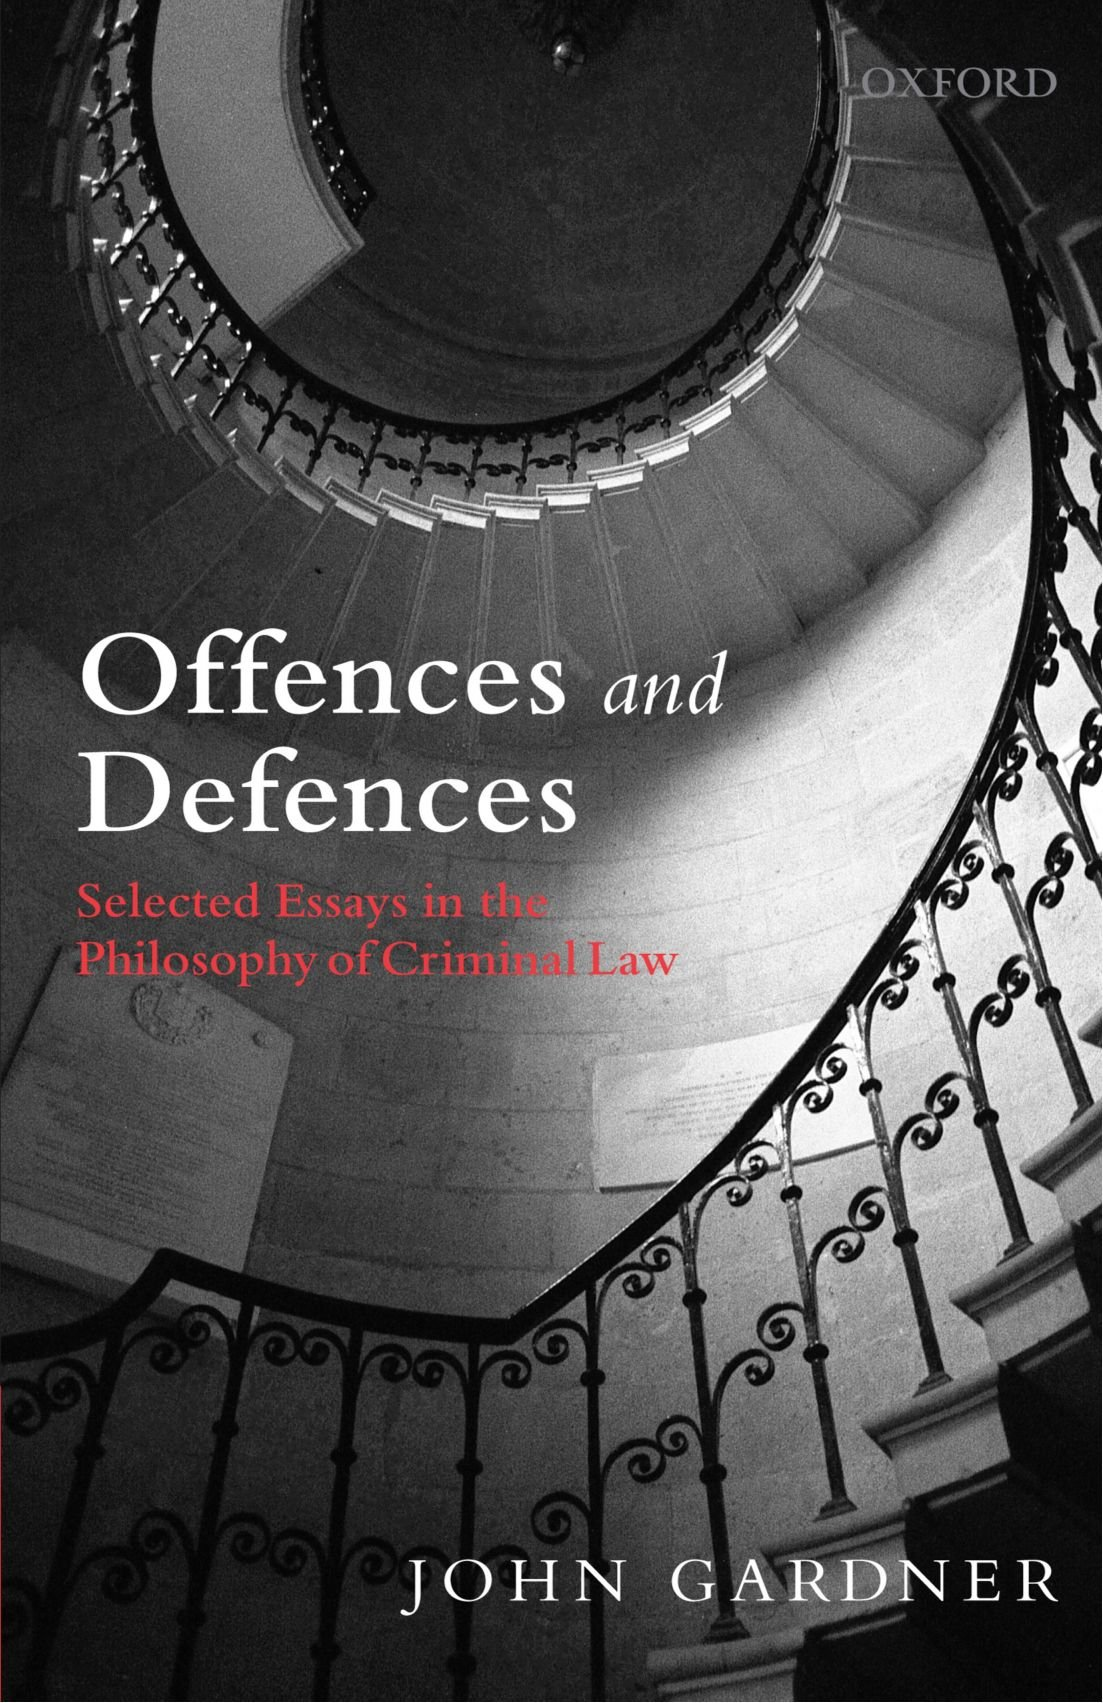 Offences and Defences: Selected Essays in the Philosophy of Criminal Law by Oxford University Press